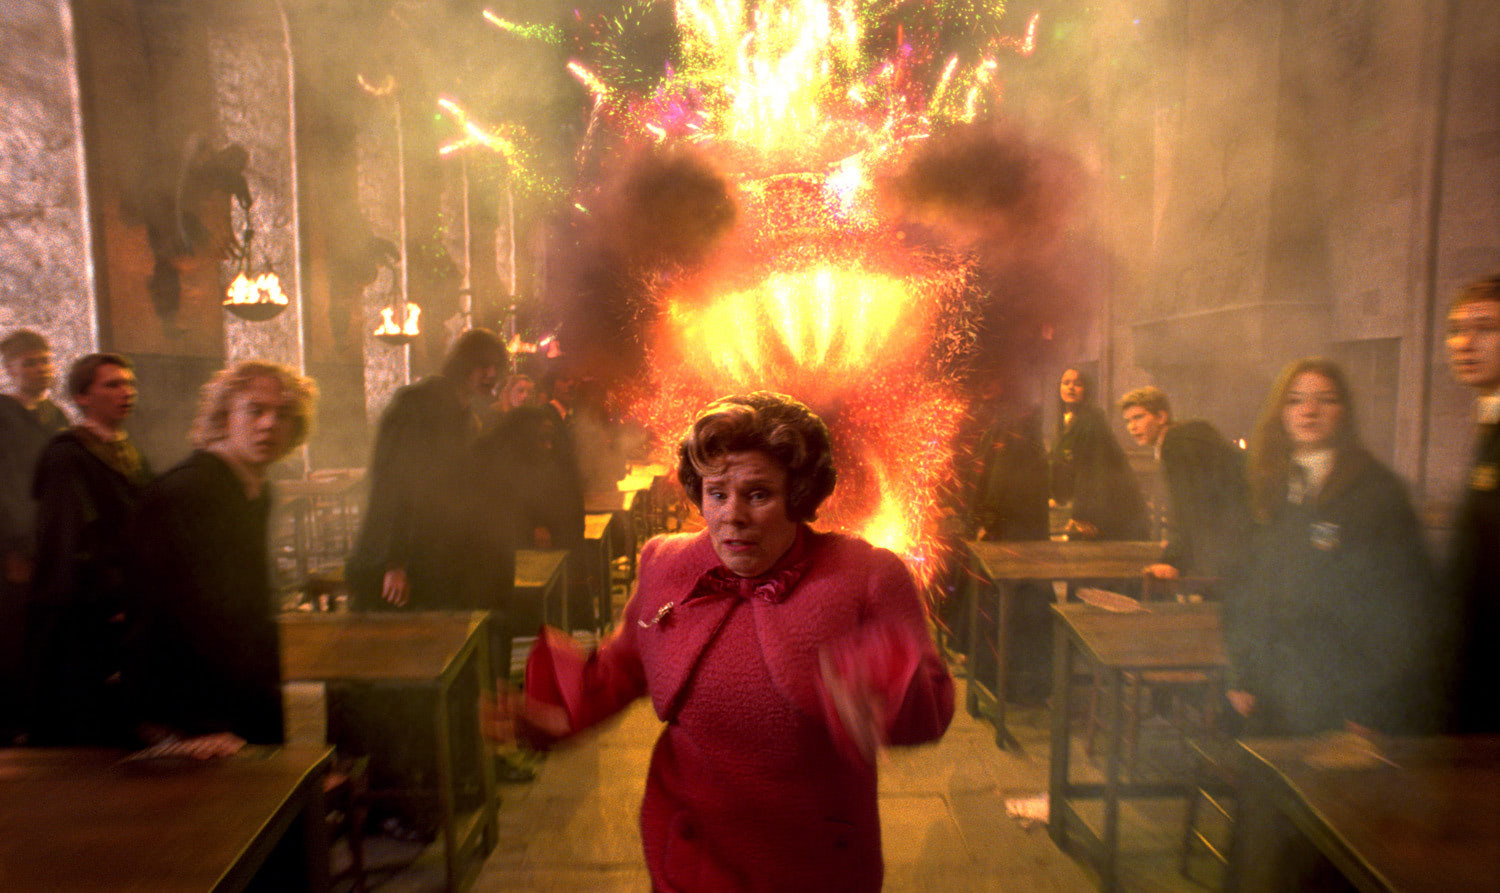 Umbridge runs from the fire dragon